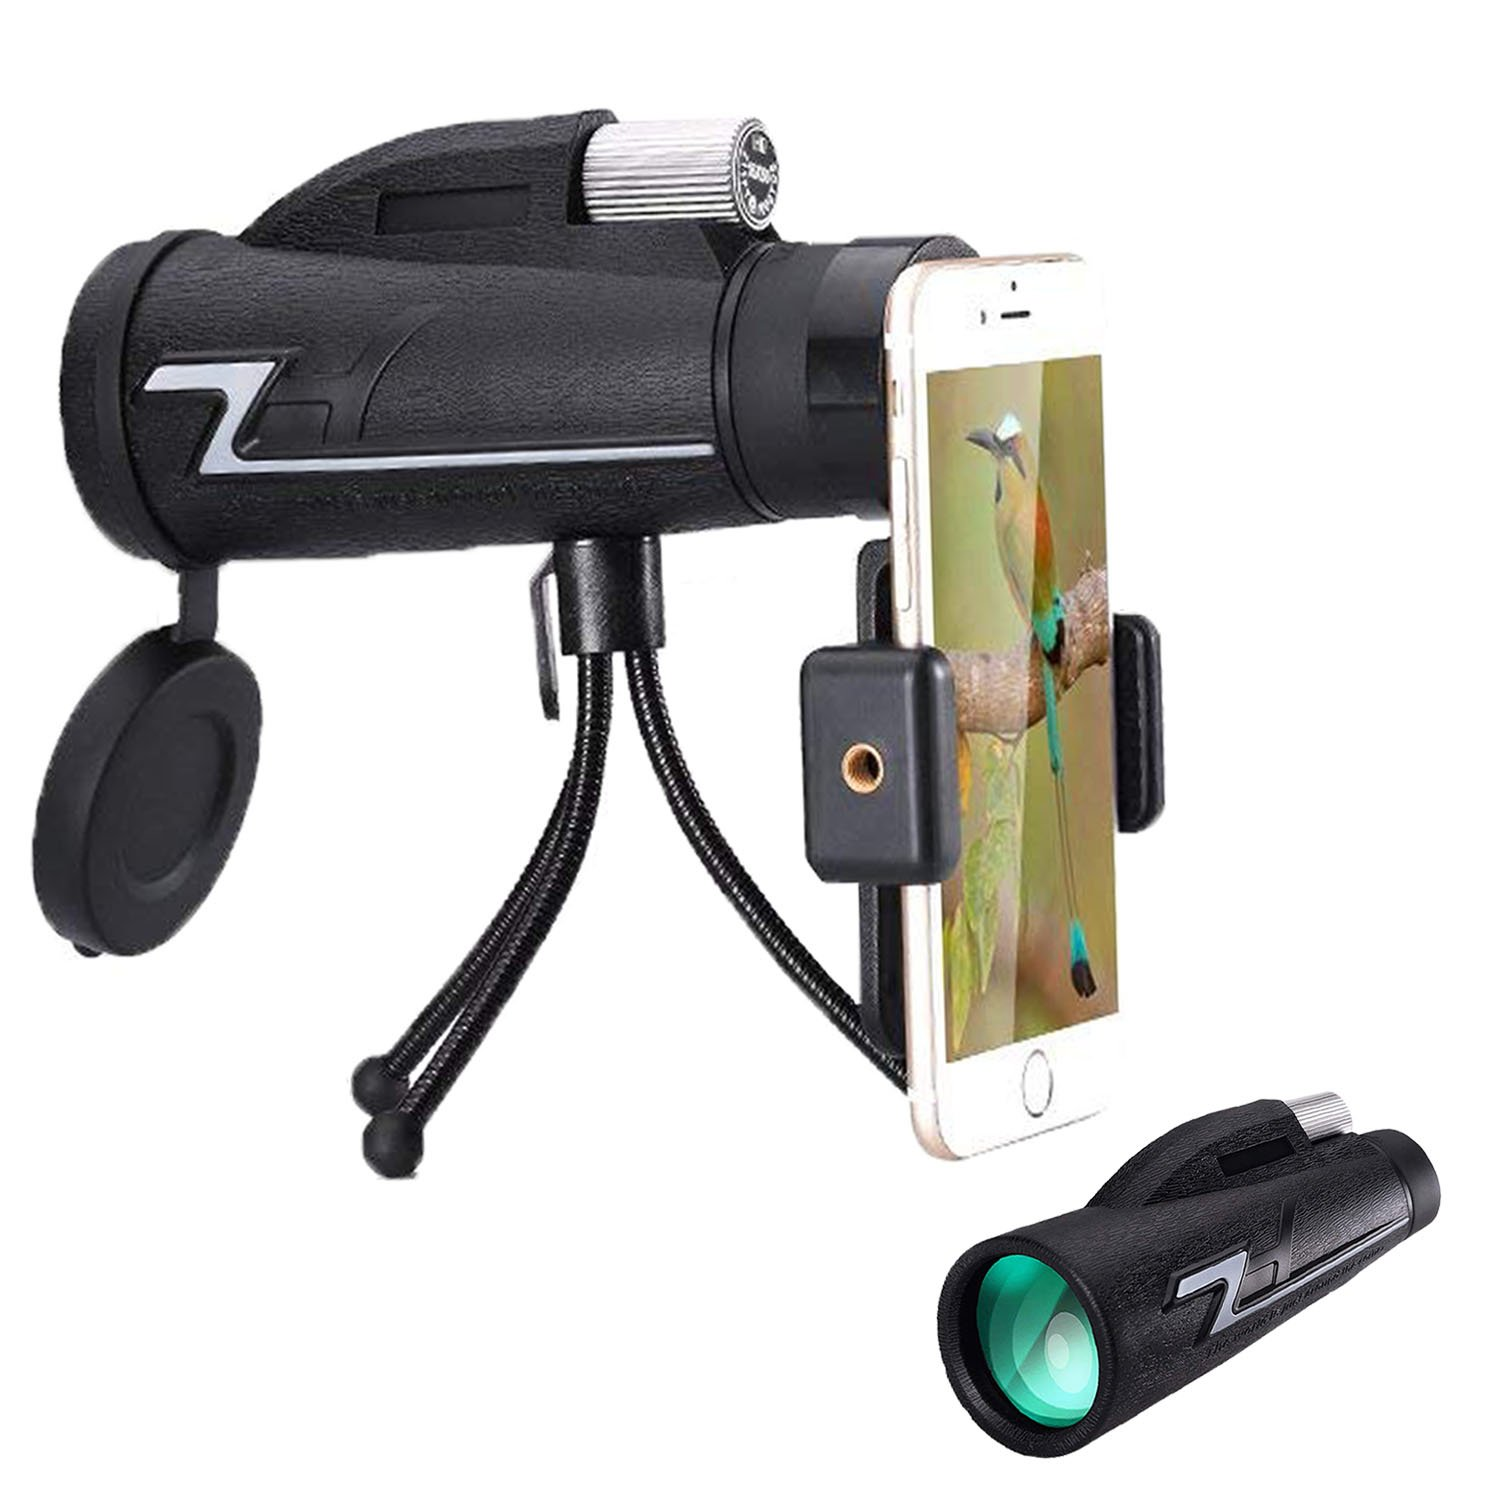 Ciysty 16X50 High Power Prism Monocular and Quick Smartphone Holder -Daily Splash and Shockproof -BAK4 Prism FMC for Bird Watching Hunting Camping Travelling Wildlife by Ciysty